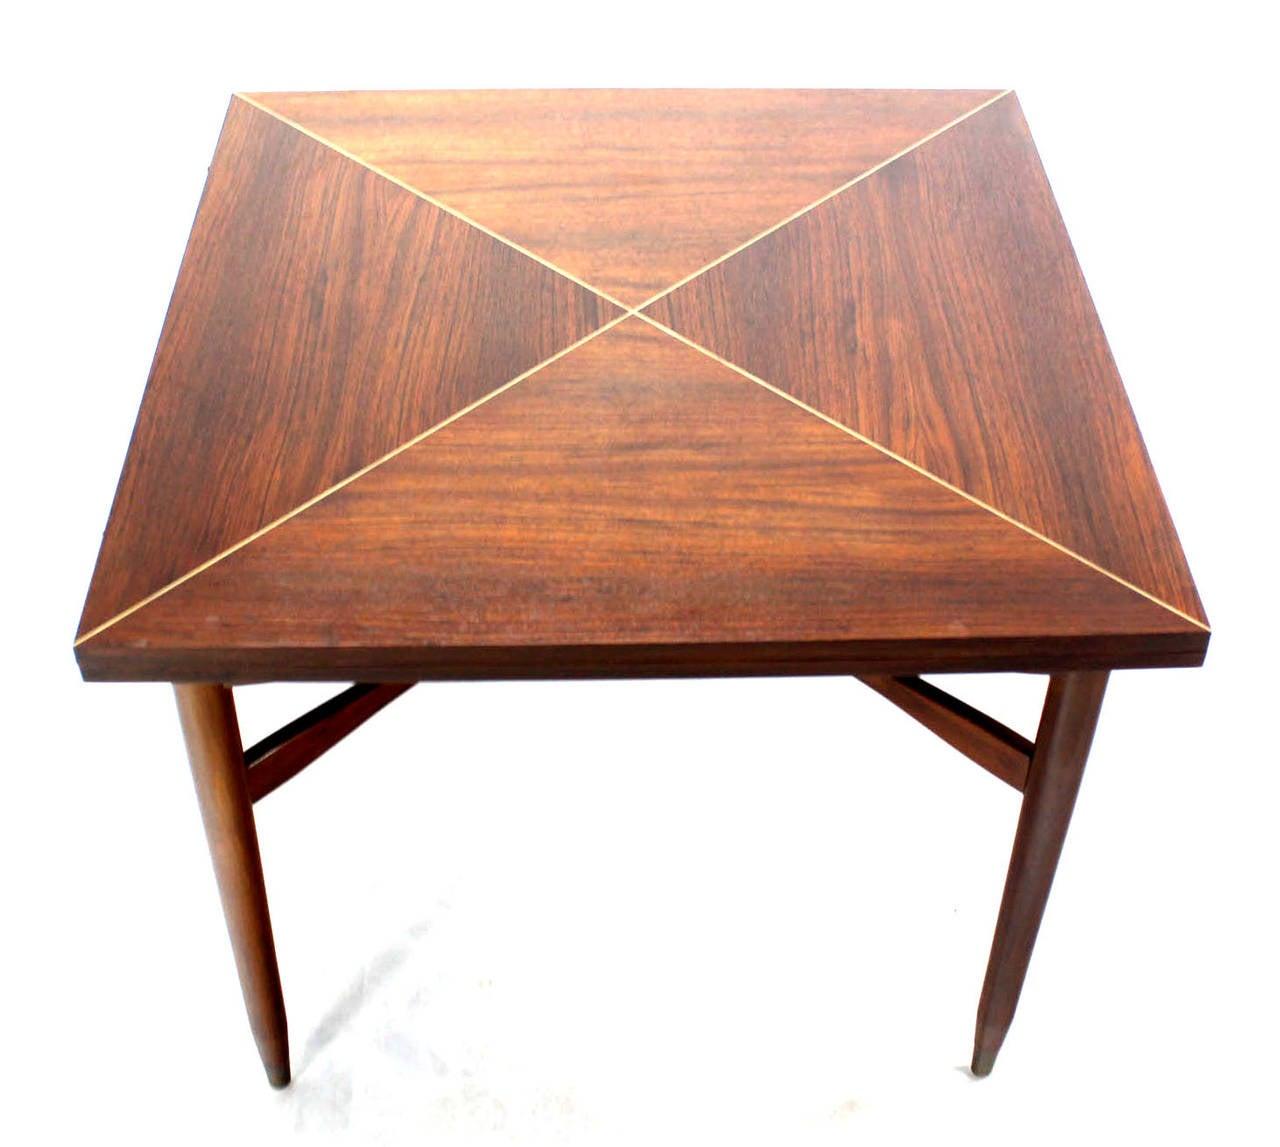 20th Century Walnut-Top with Brass Inlay, Mid-Century Modern Expandable Game Table